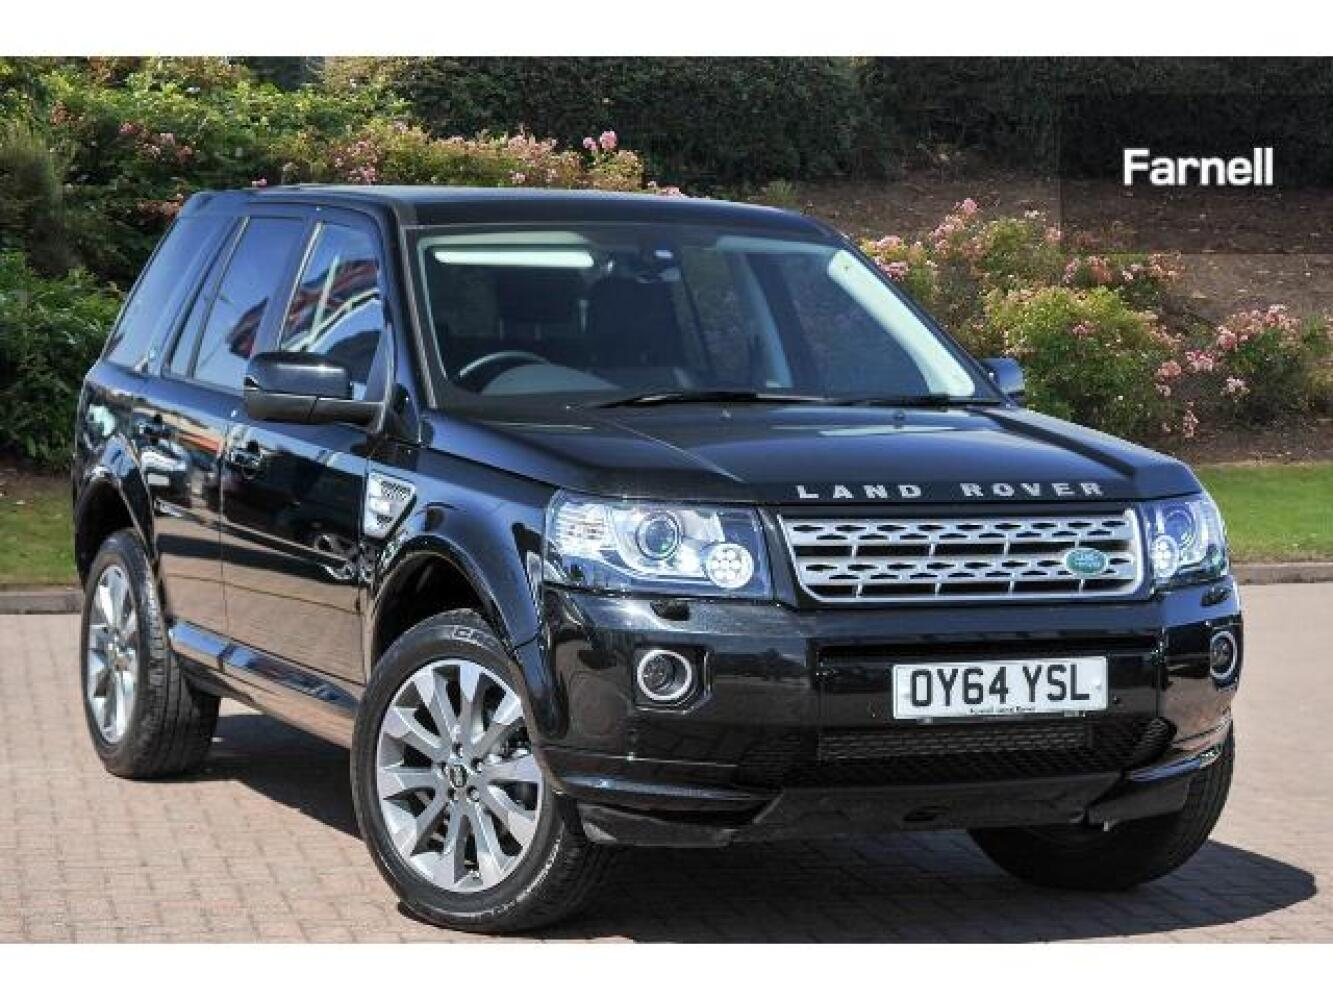 used land rover freelander 2 2 sd4 metropolis 5dr auto diesel station wagon for sale farnell. Black Bedroom Furniture Sets. Home Design Ideas